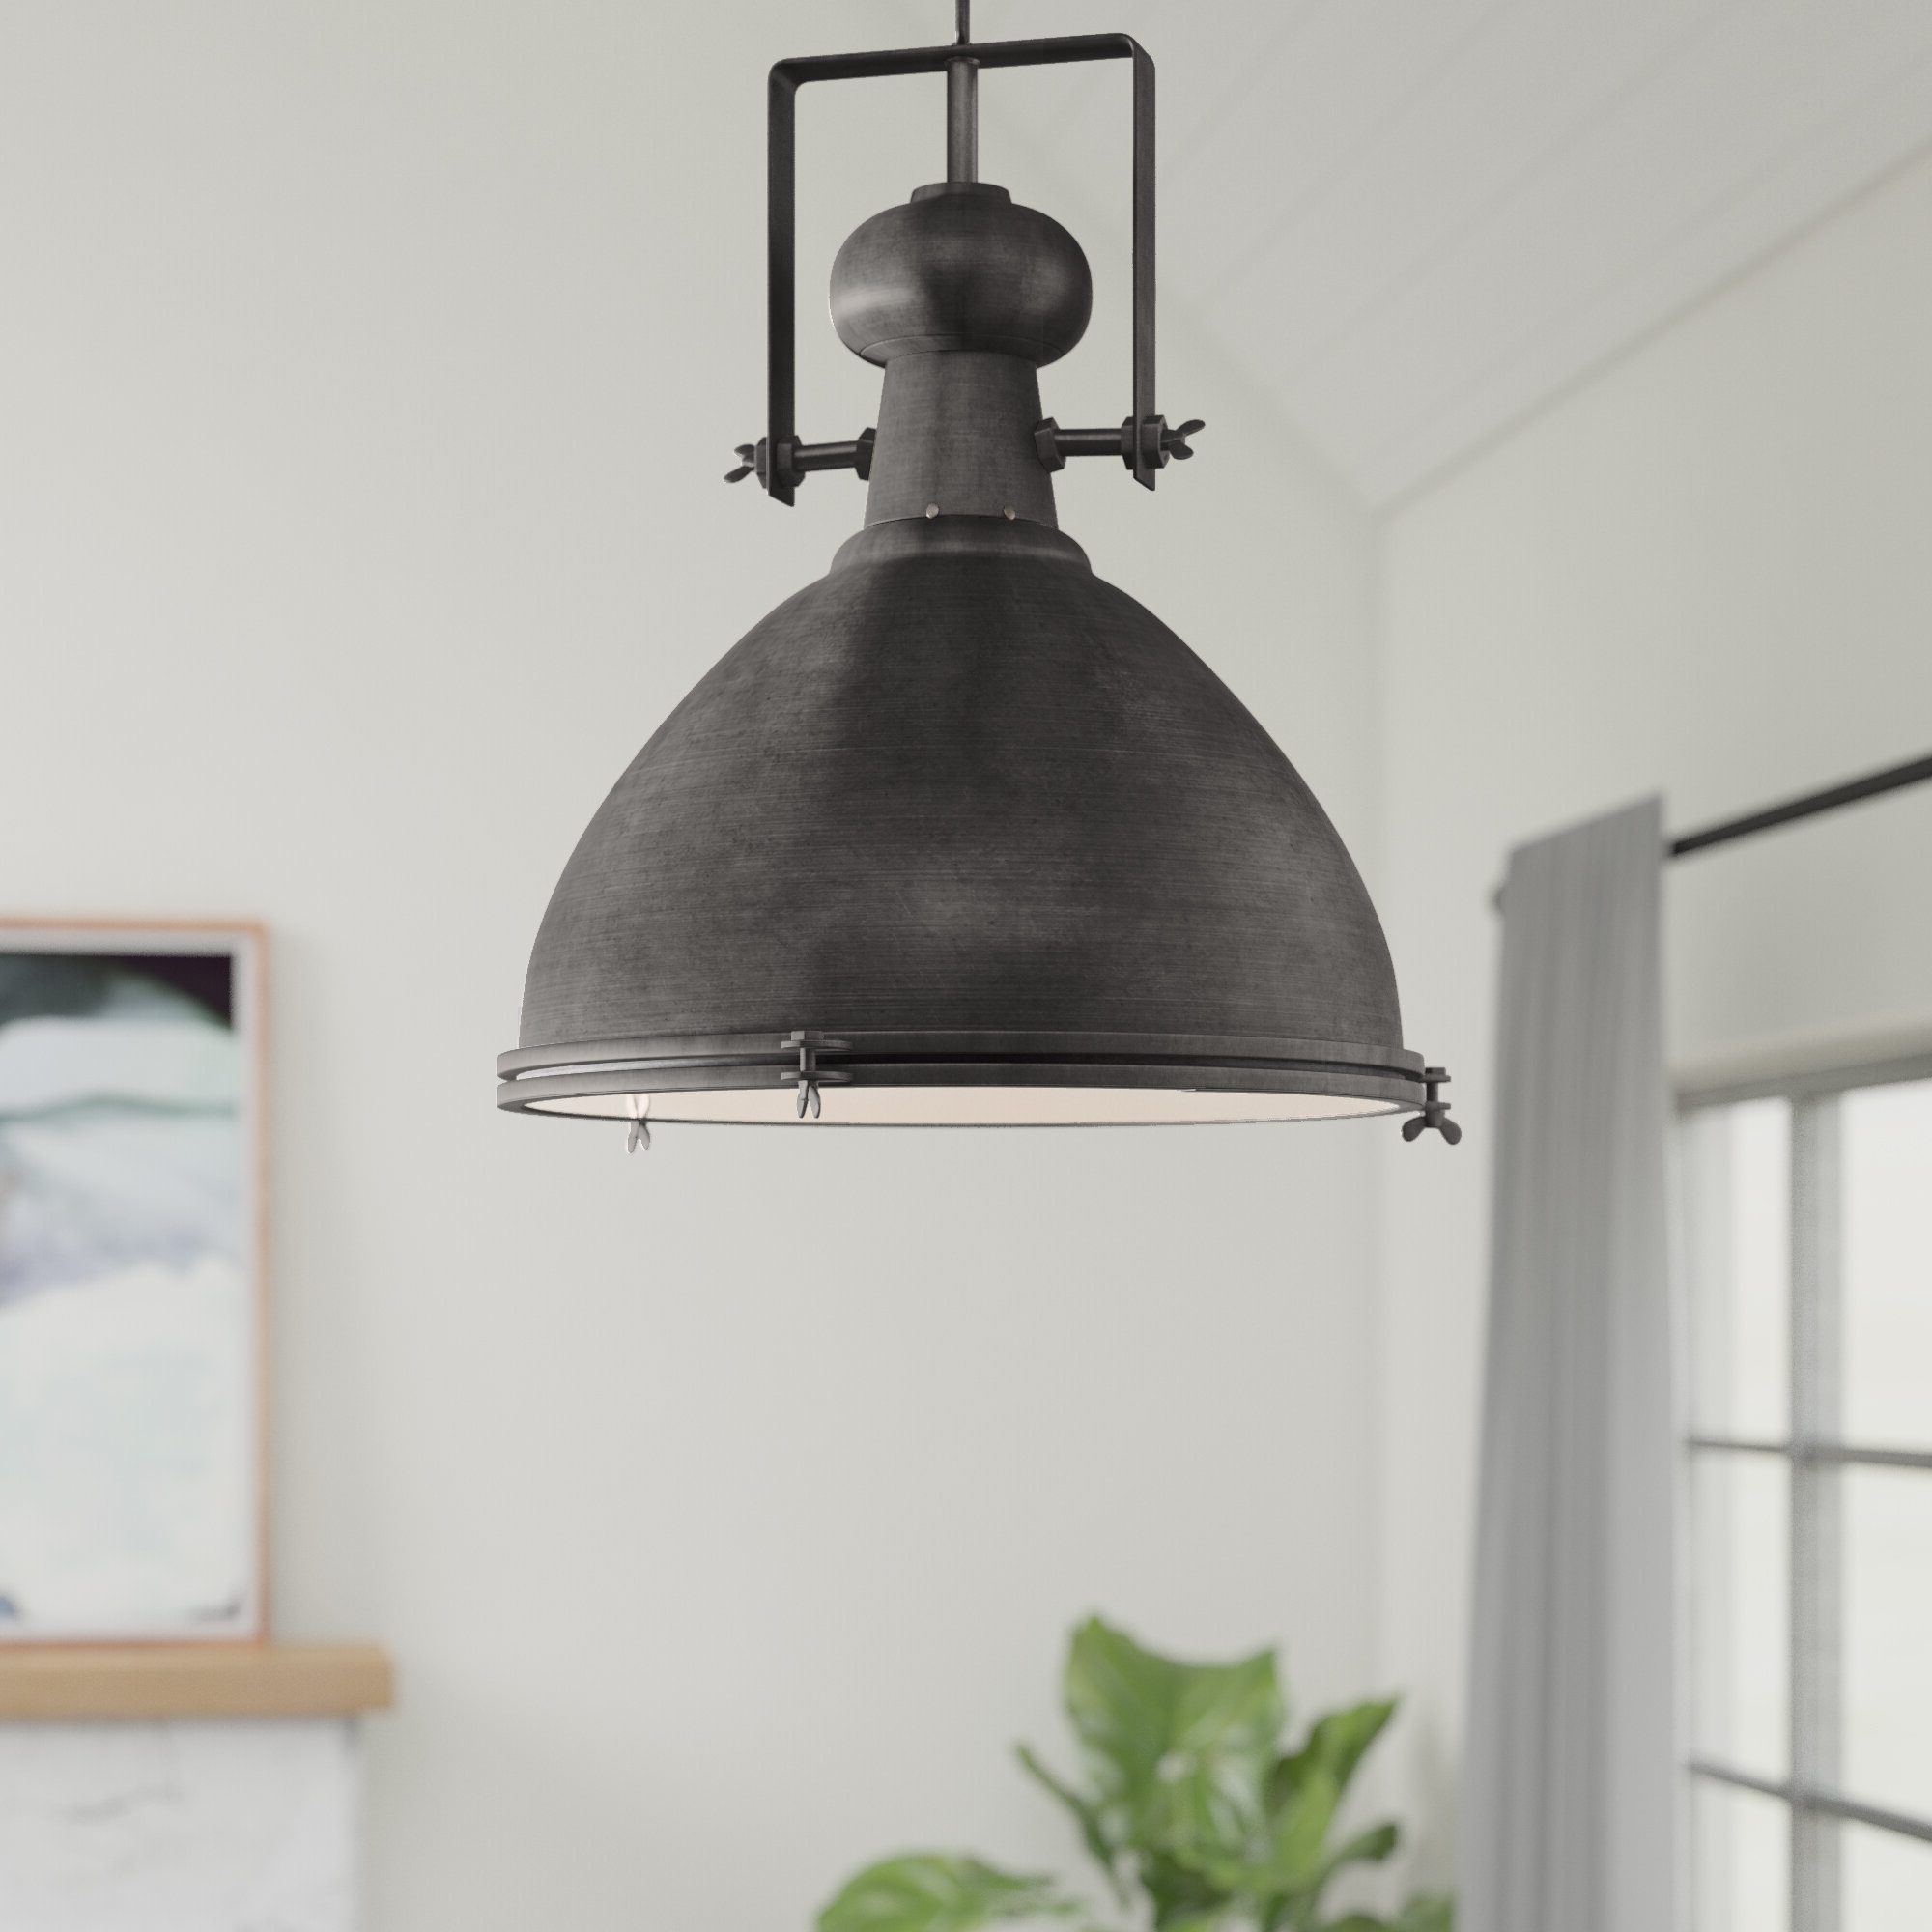 Famous 17 Stories Lavern 1 Light Single Dome Pendant Regarding Granville 3 Light Single Dome Pendants (View 4 of 25)